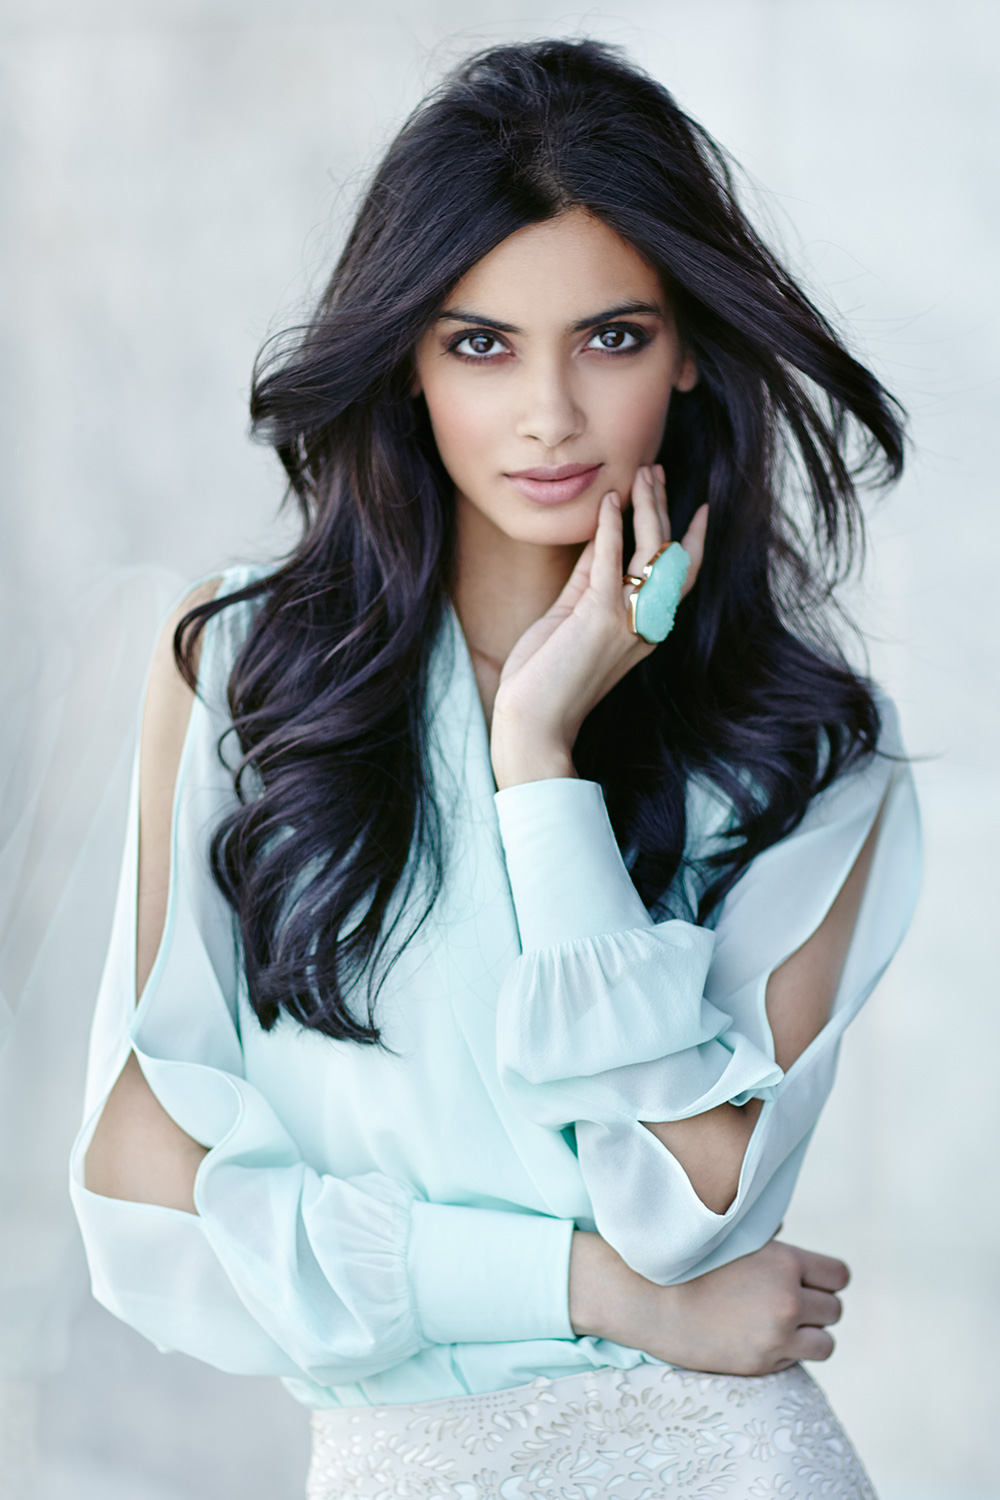 diana penty wiki biography